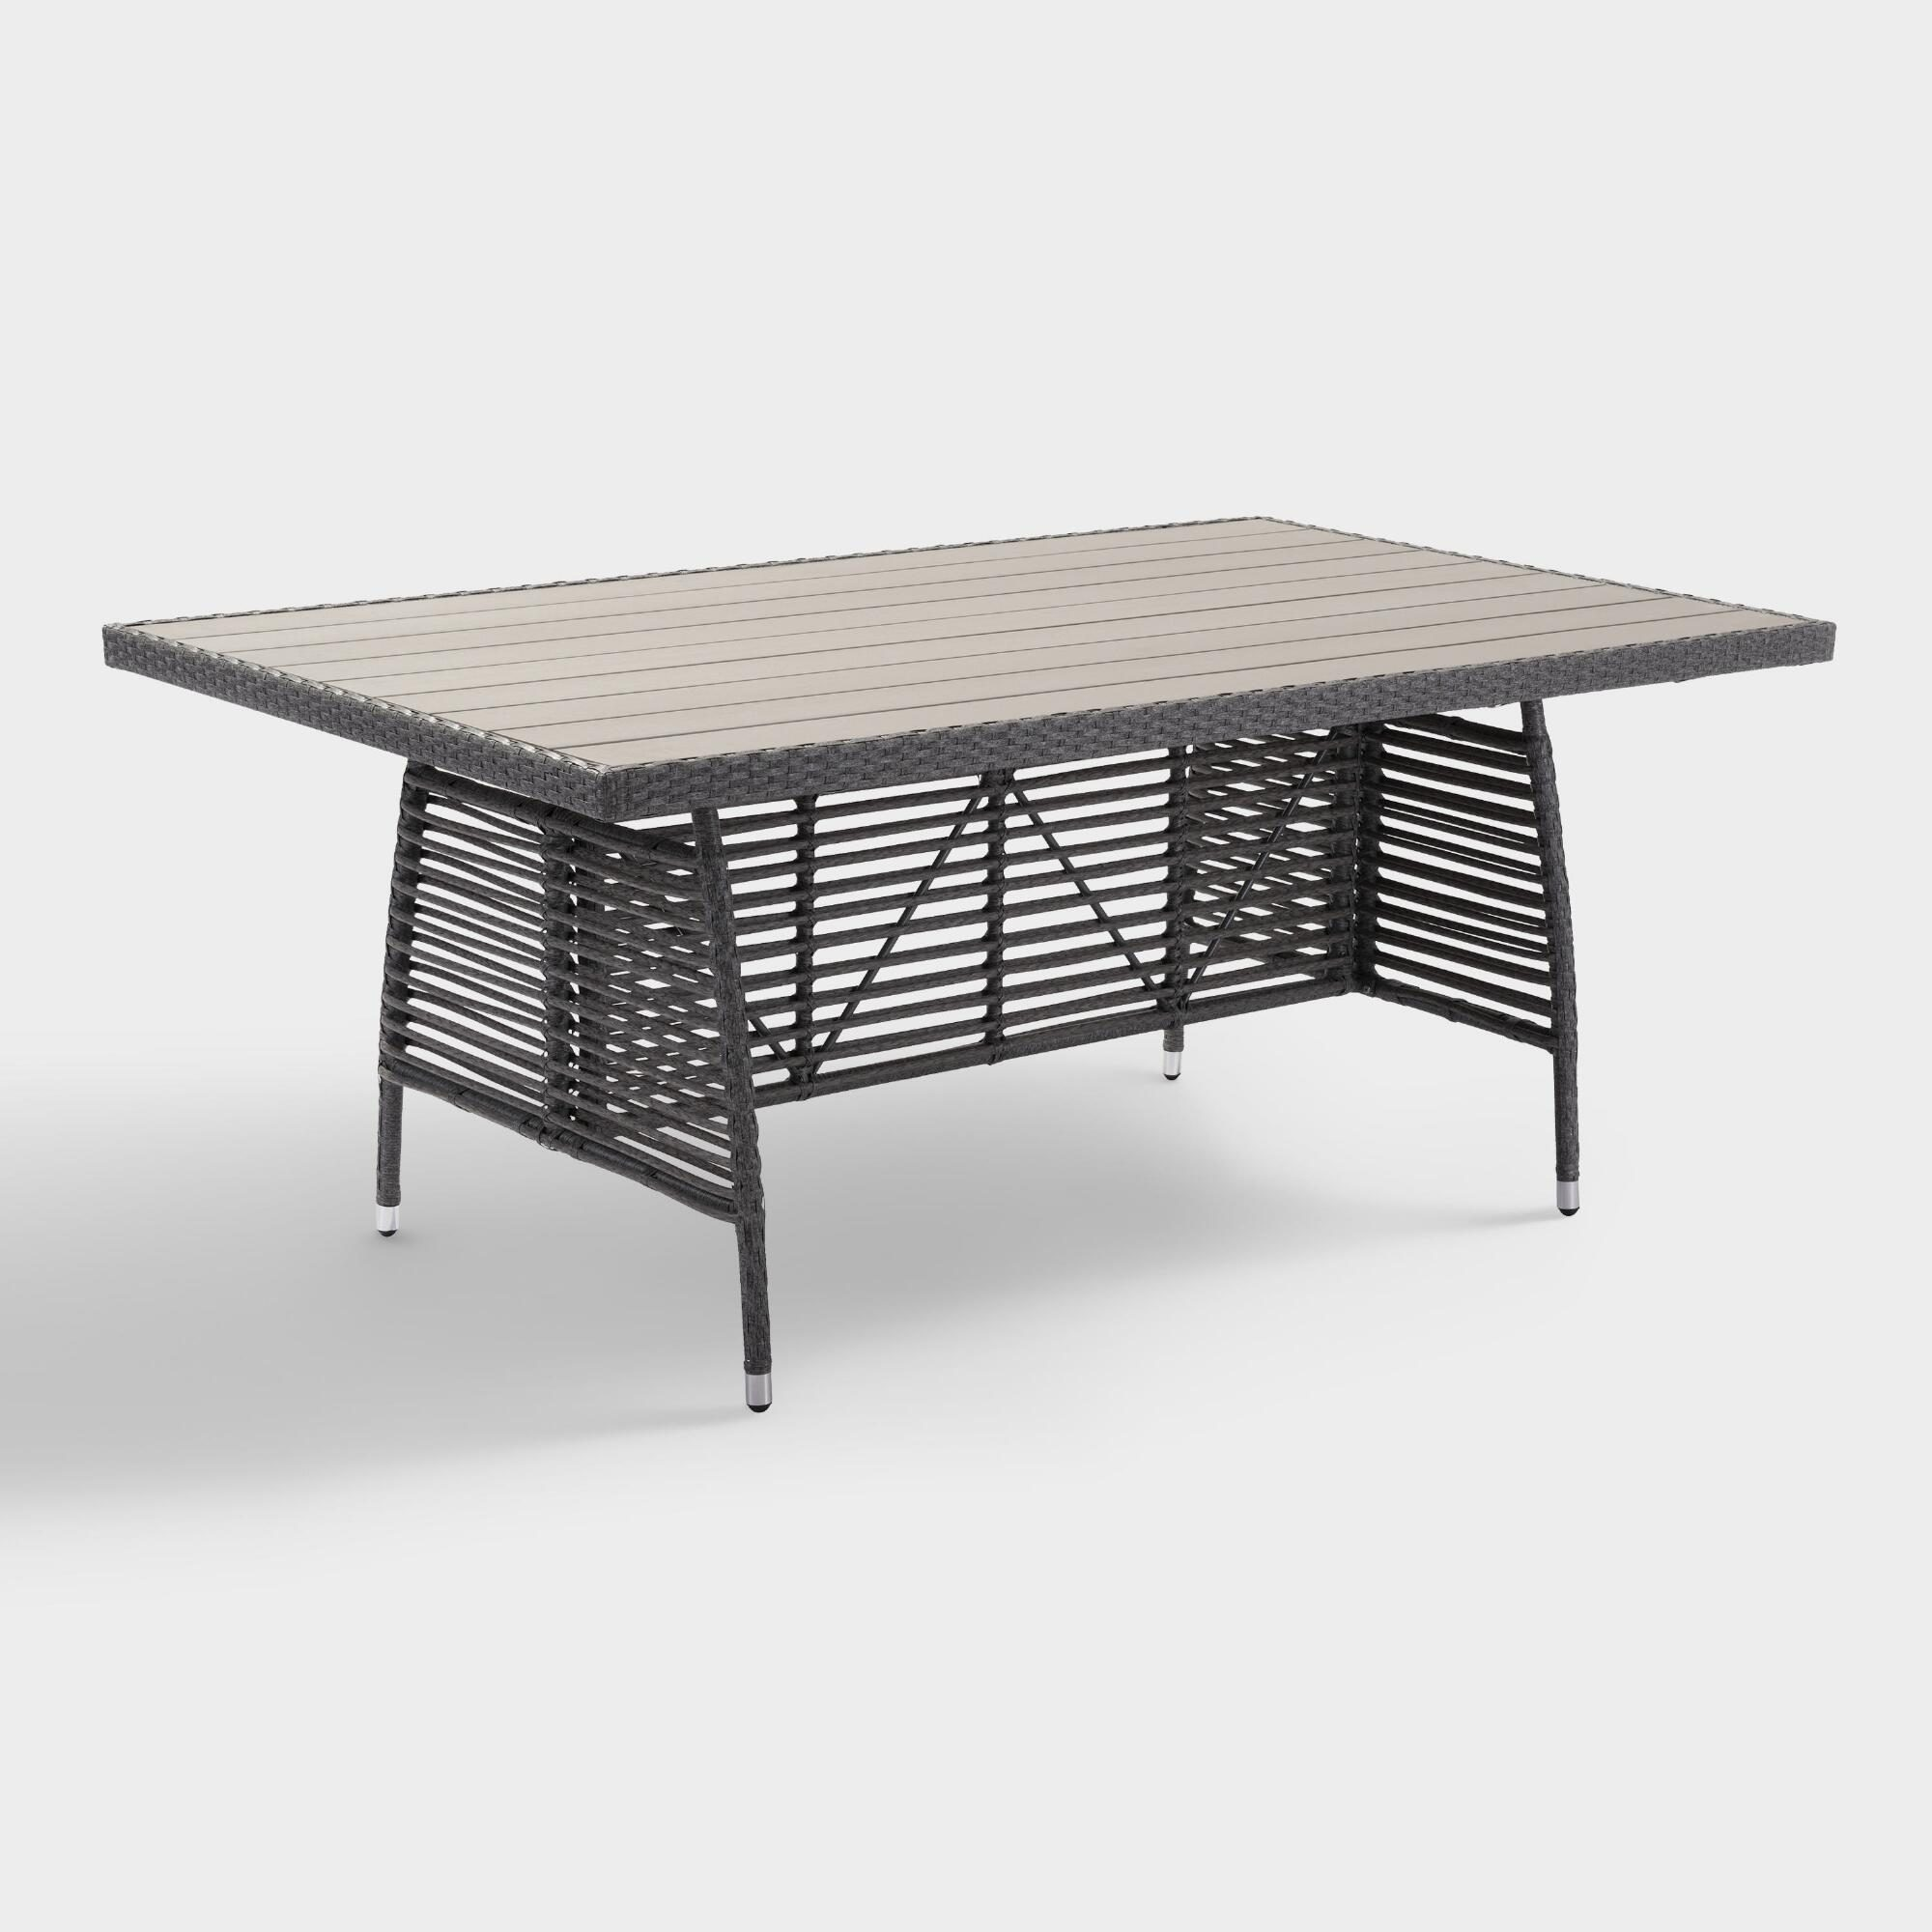 All Weather Wicker Levante Outdoor Patio Dining Table: Gray - Resin by World Market